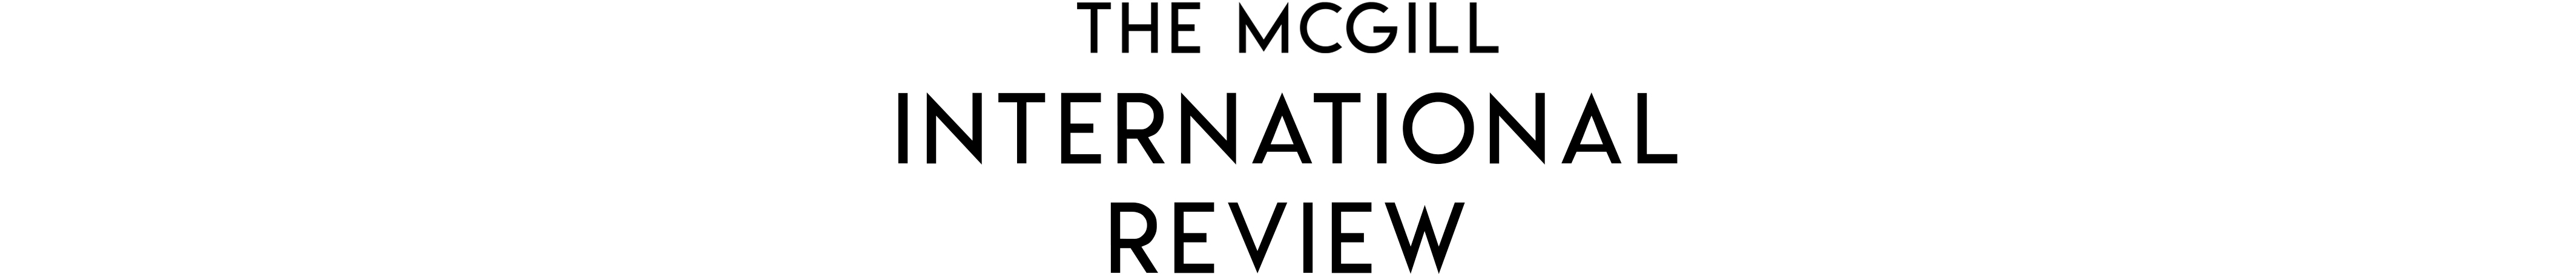 The McGill International Review